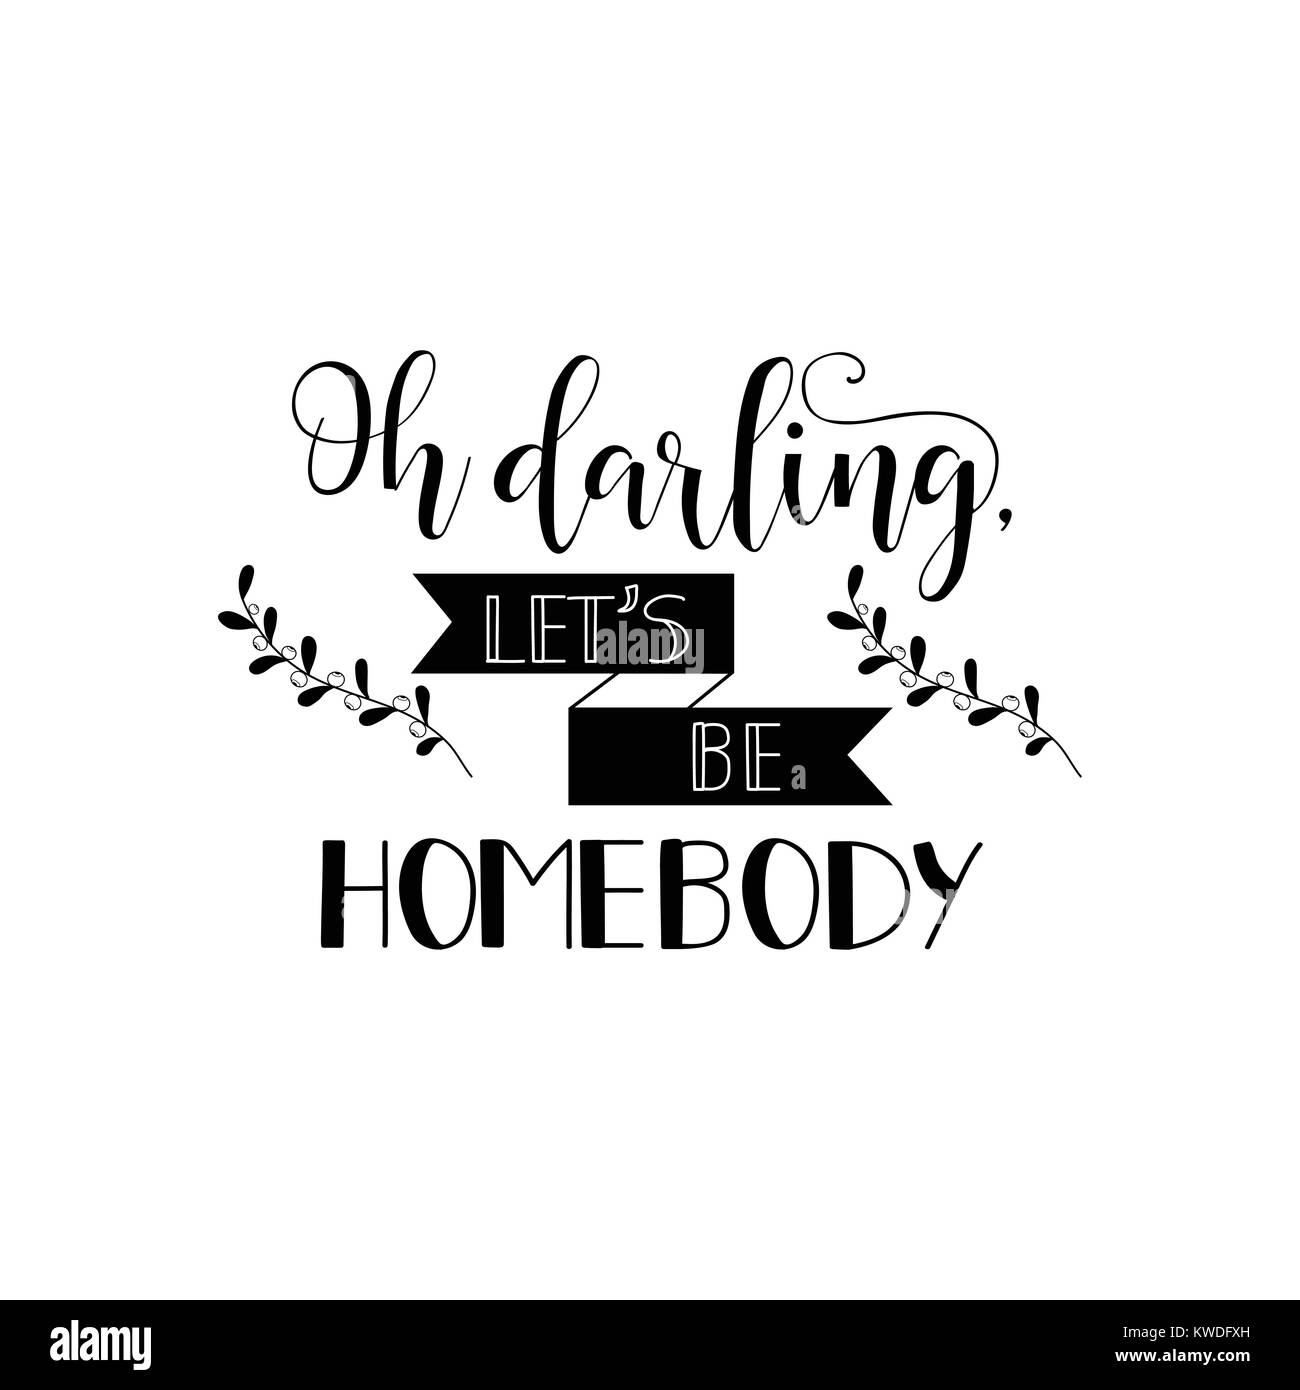 Oh darling, let's be homebody. Lettering. element for flyers, banner, postcards and posters. Modern calligraphy - Stock Image